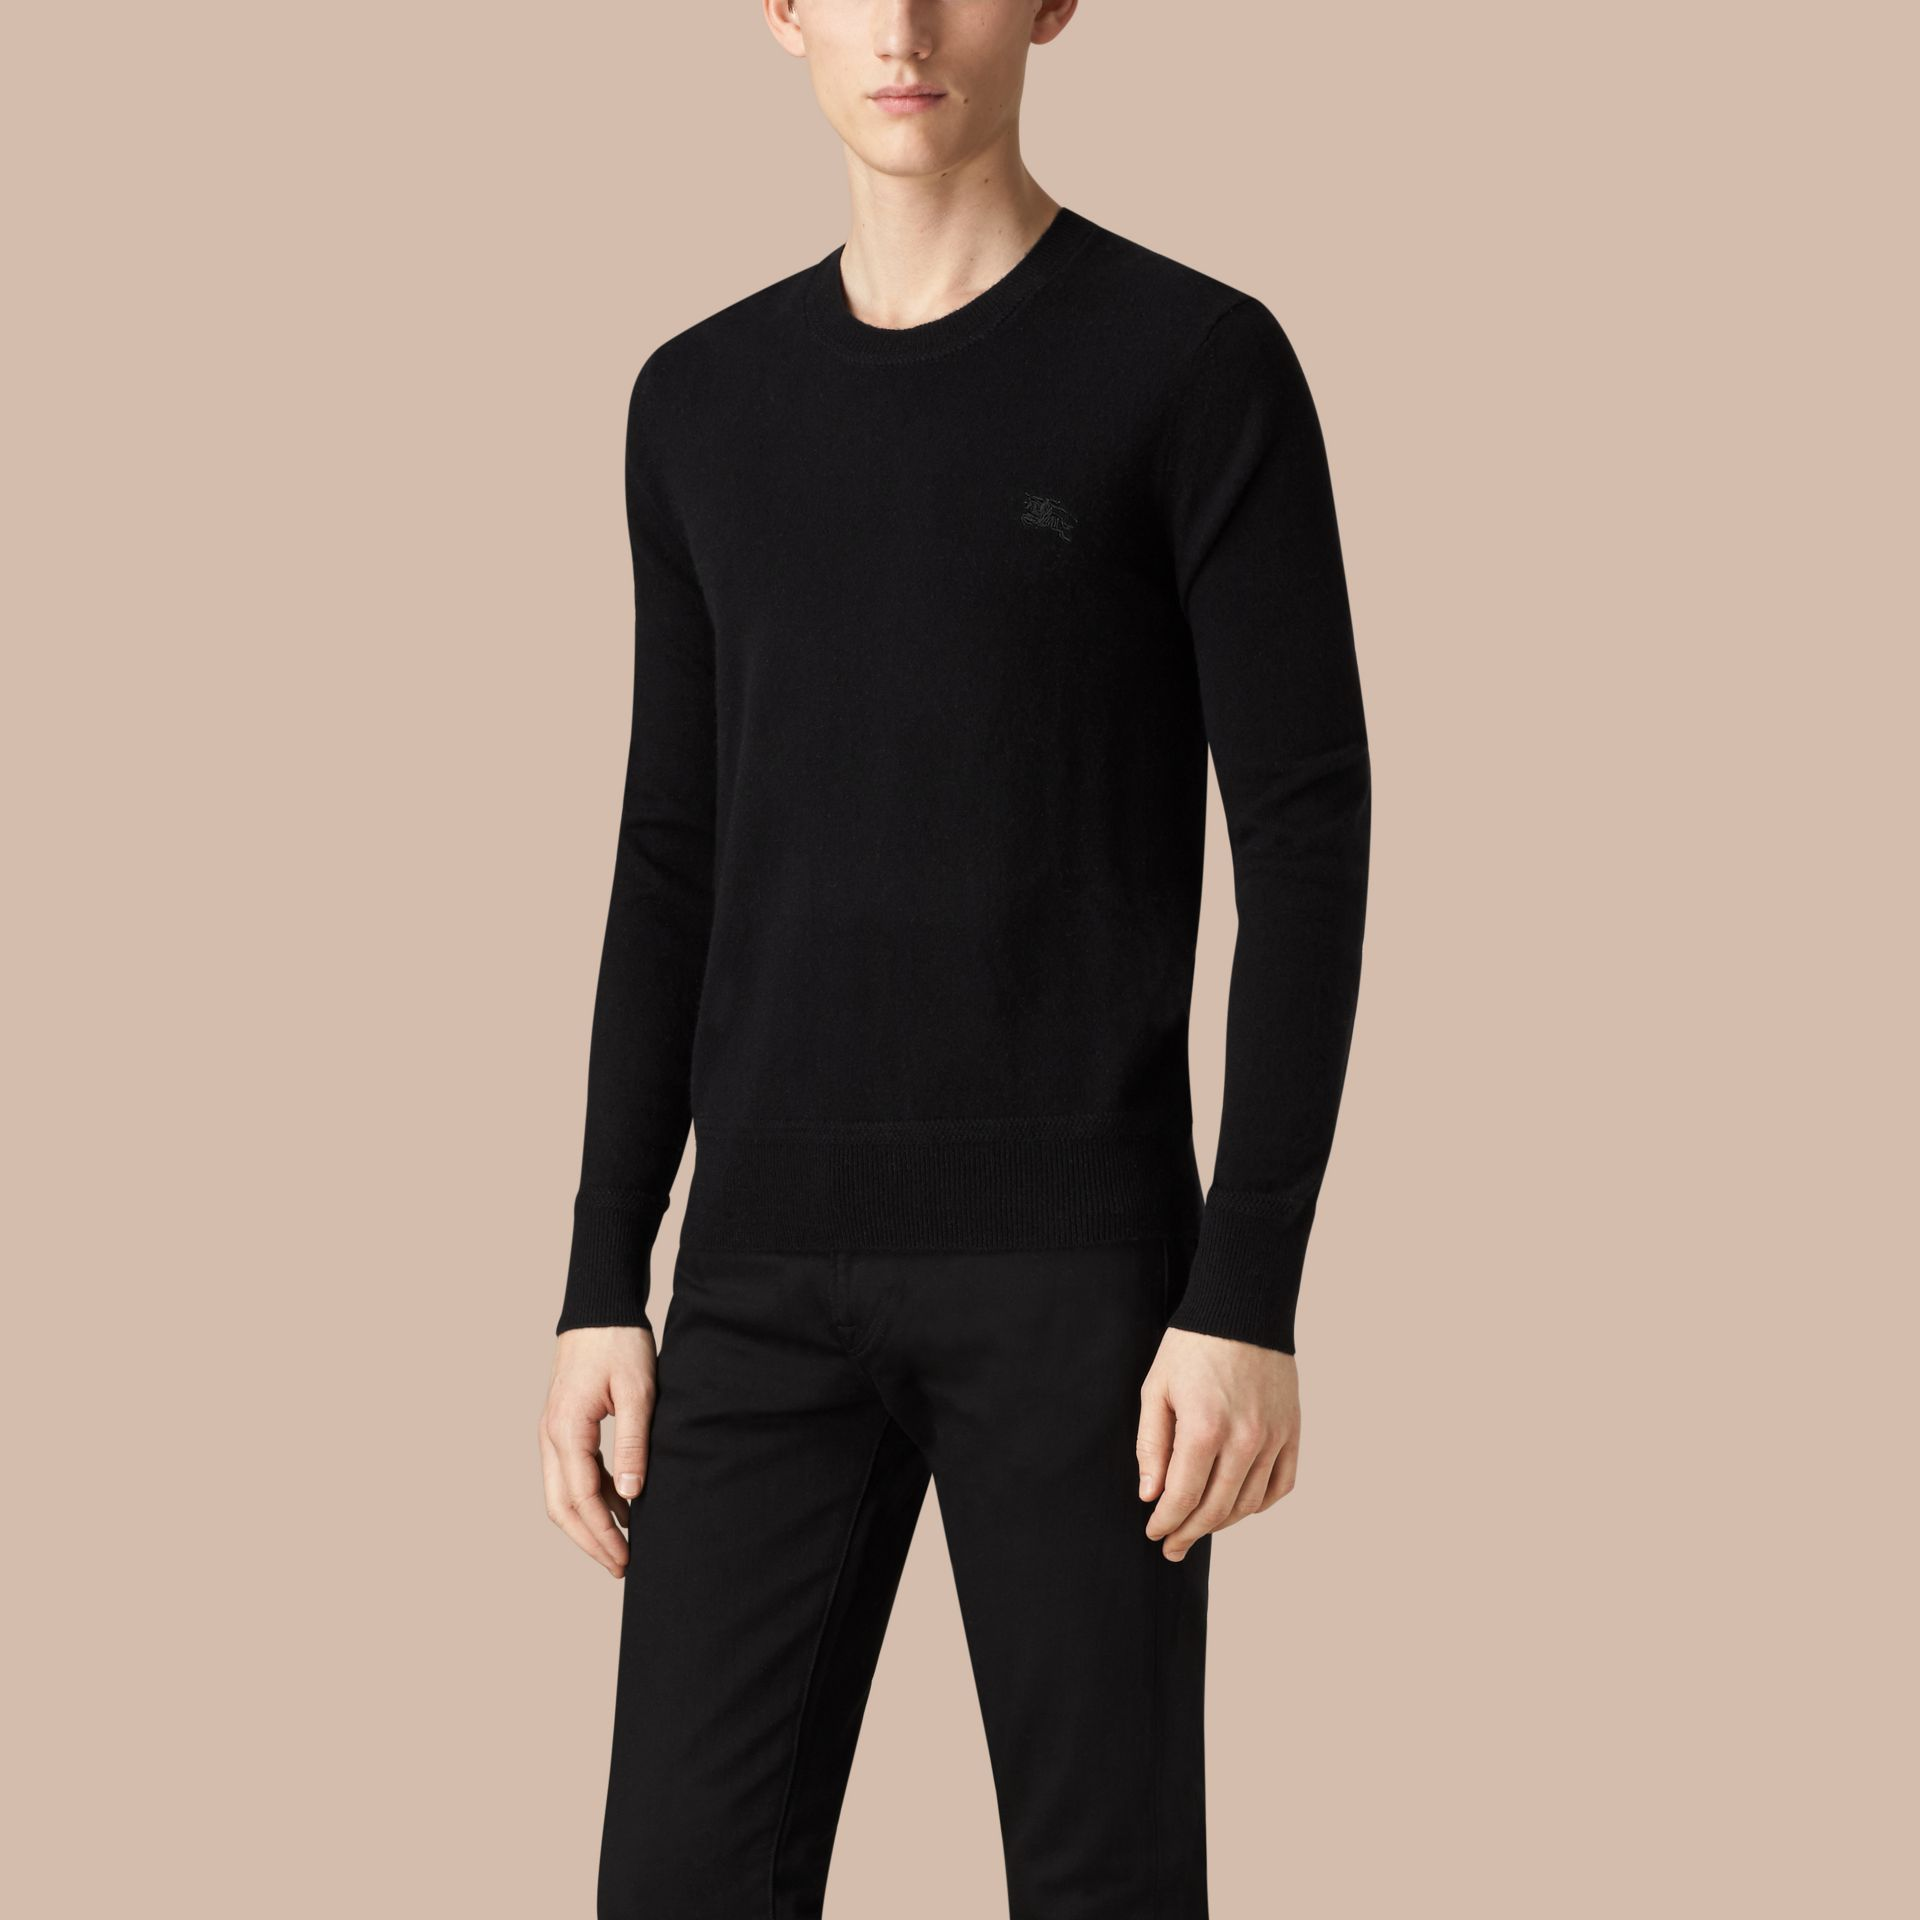 Black Crew Neck Cashmere Sweater Black - gallery image 3